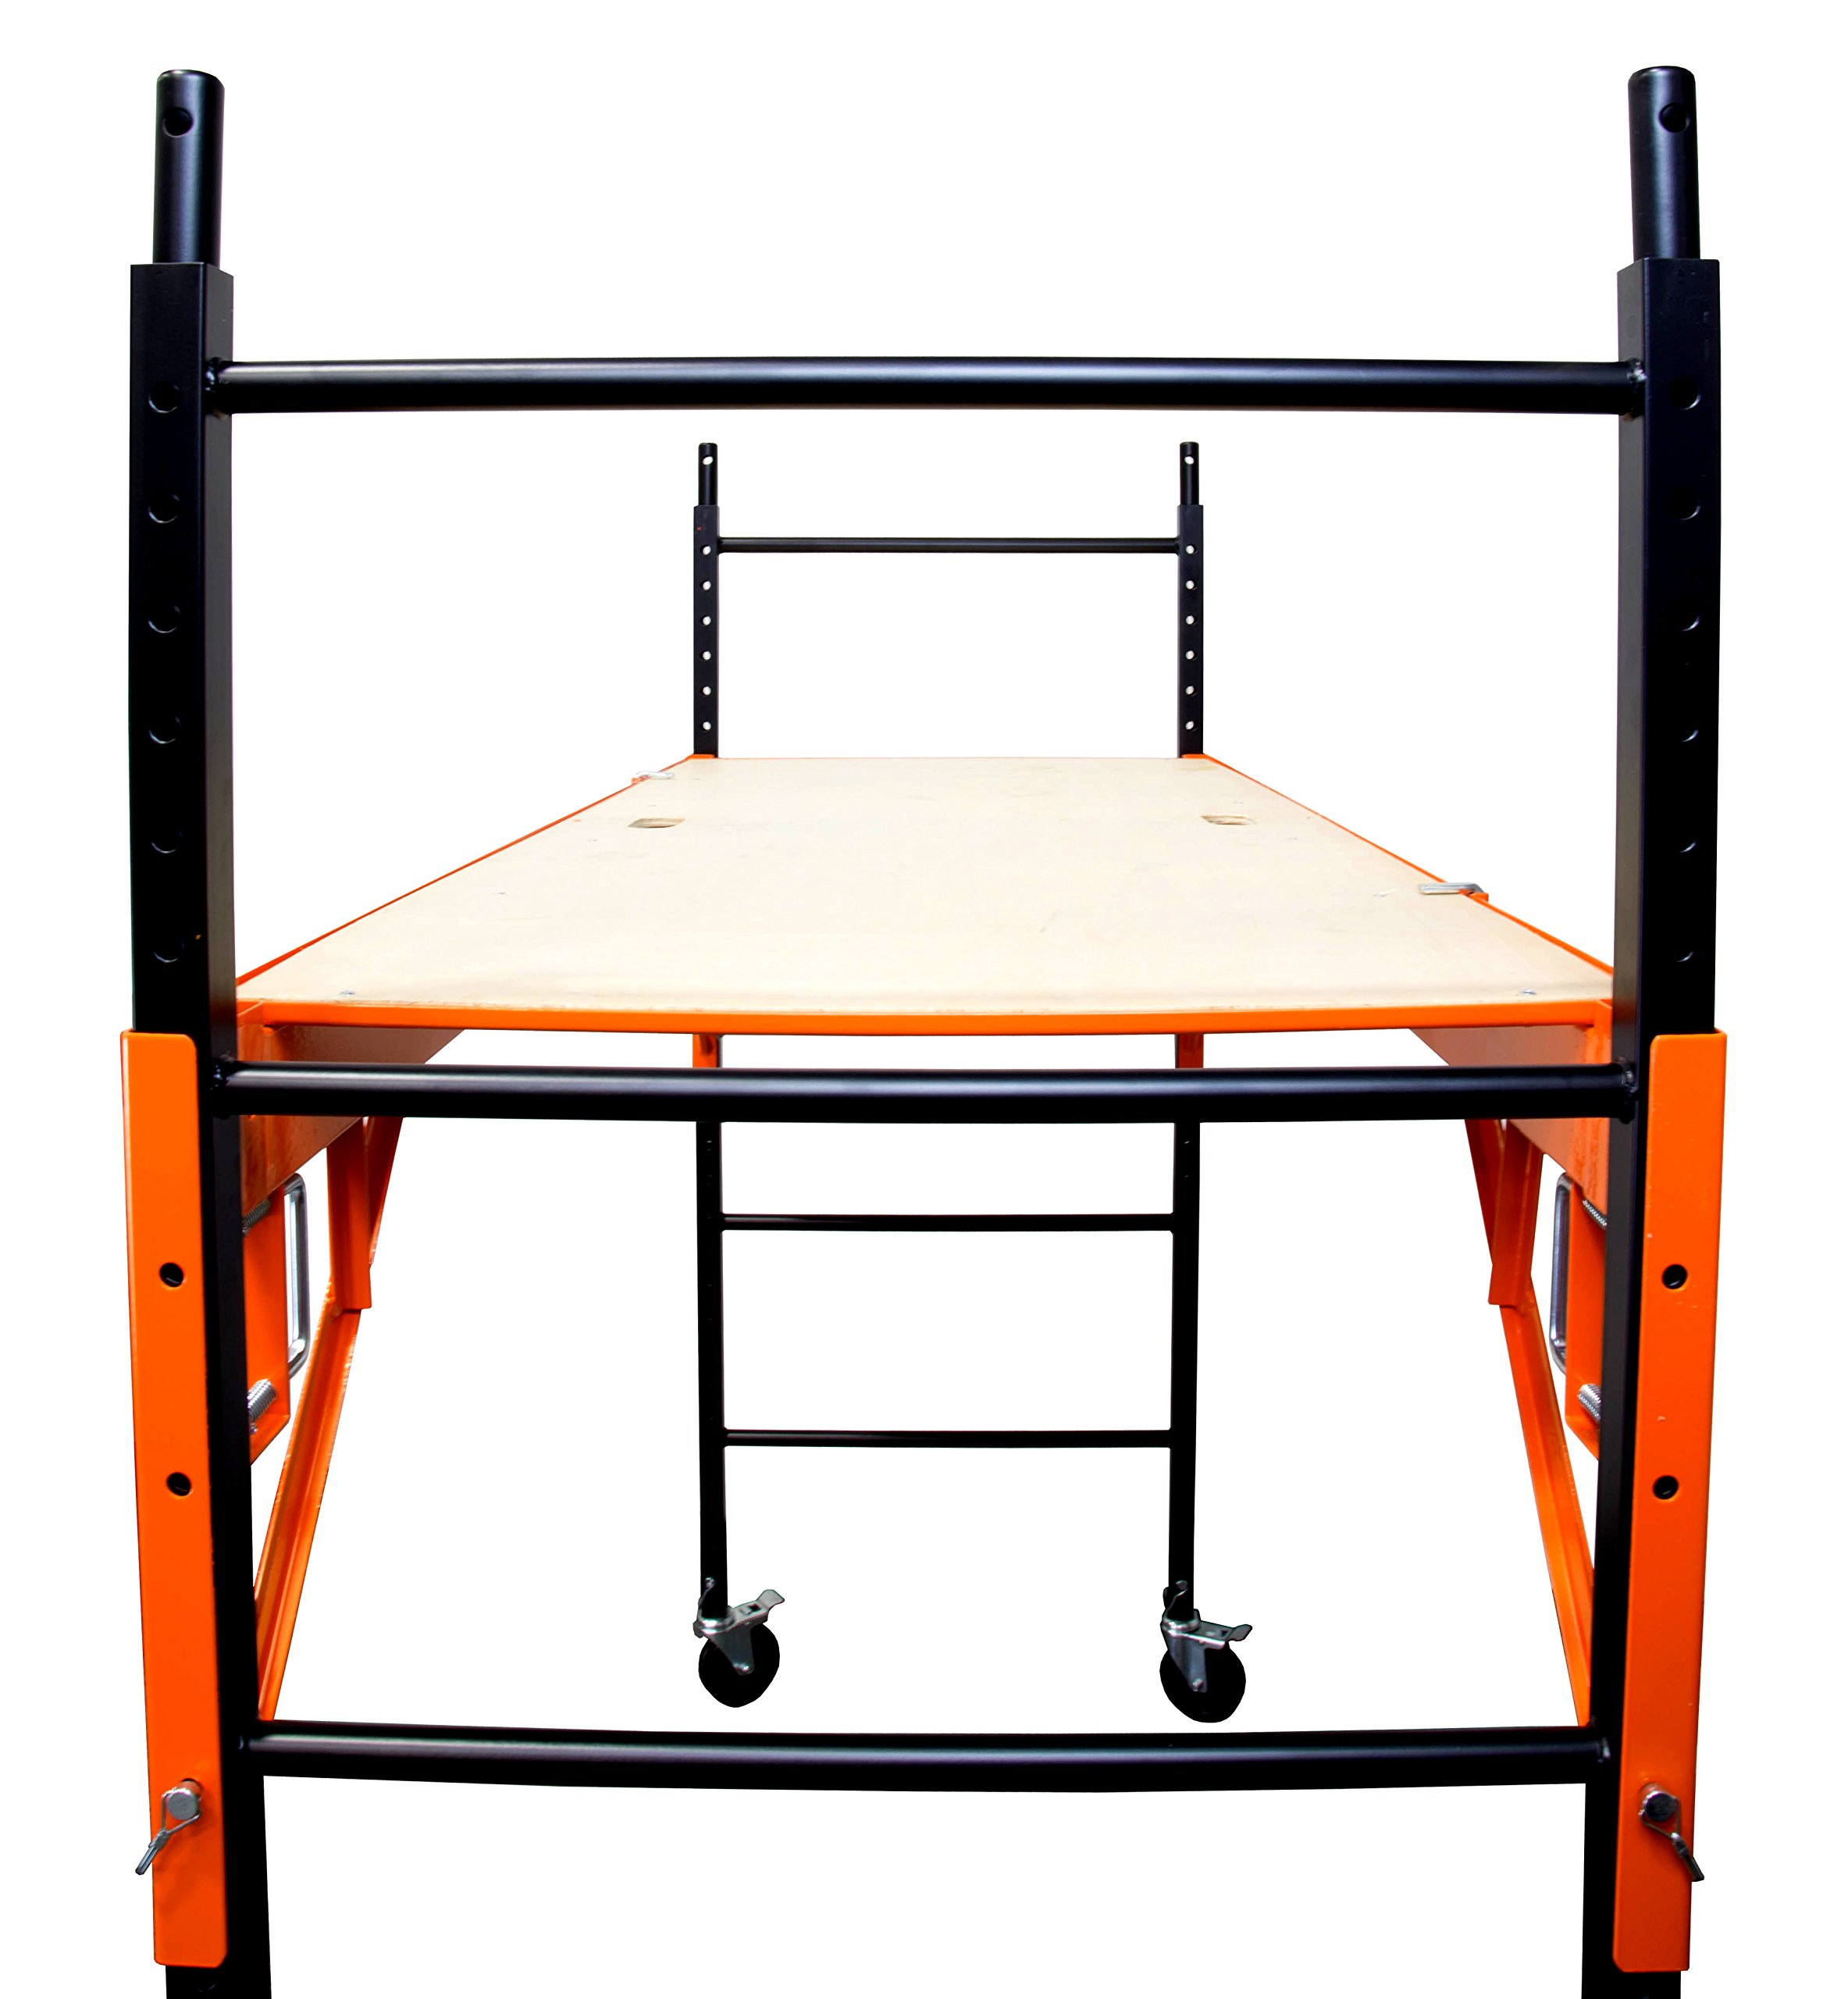 WEN 31109 1000 lb Capacity Rolling Industrial Scaffolding by WEN (Image #4)